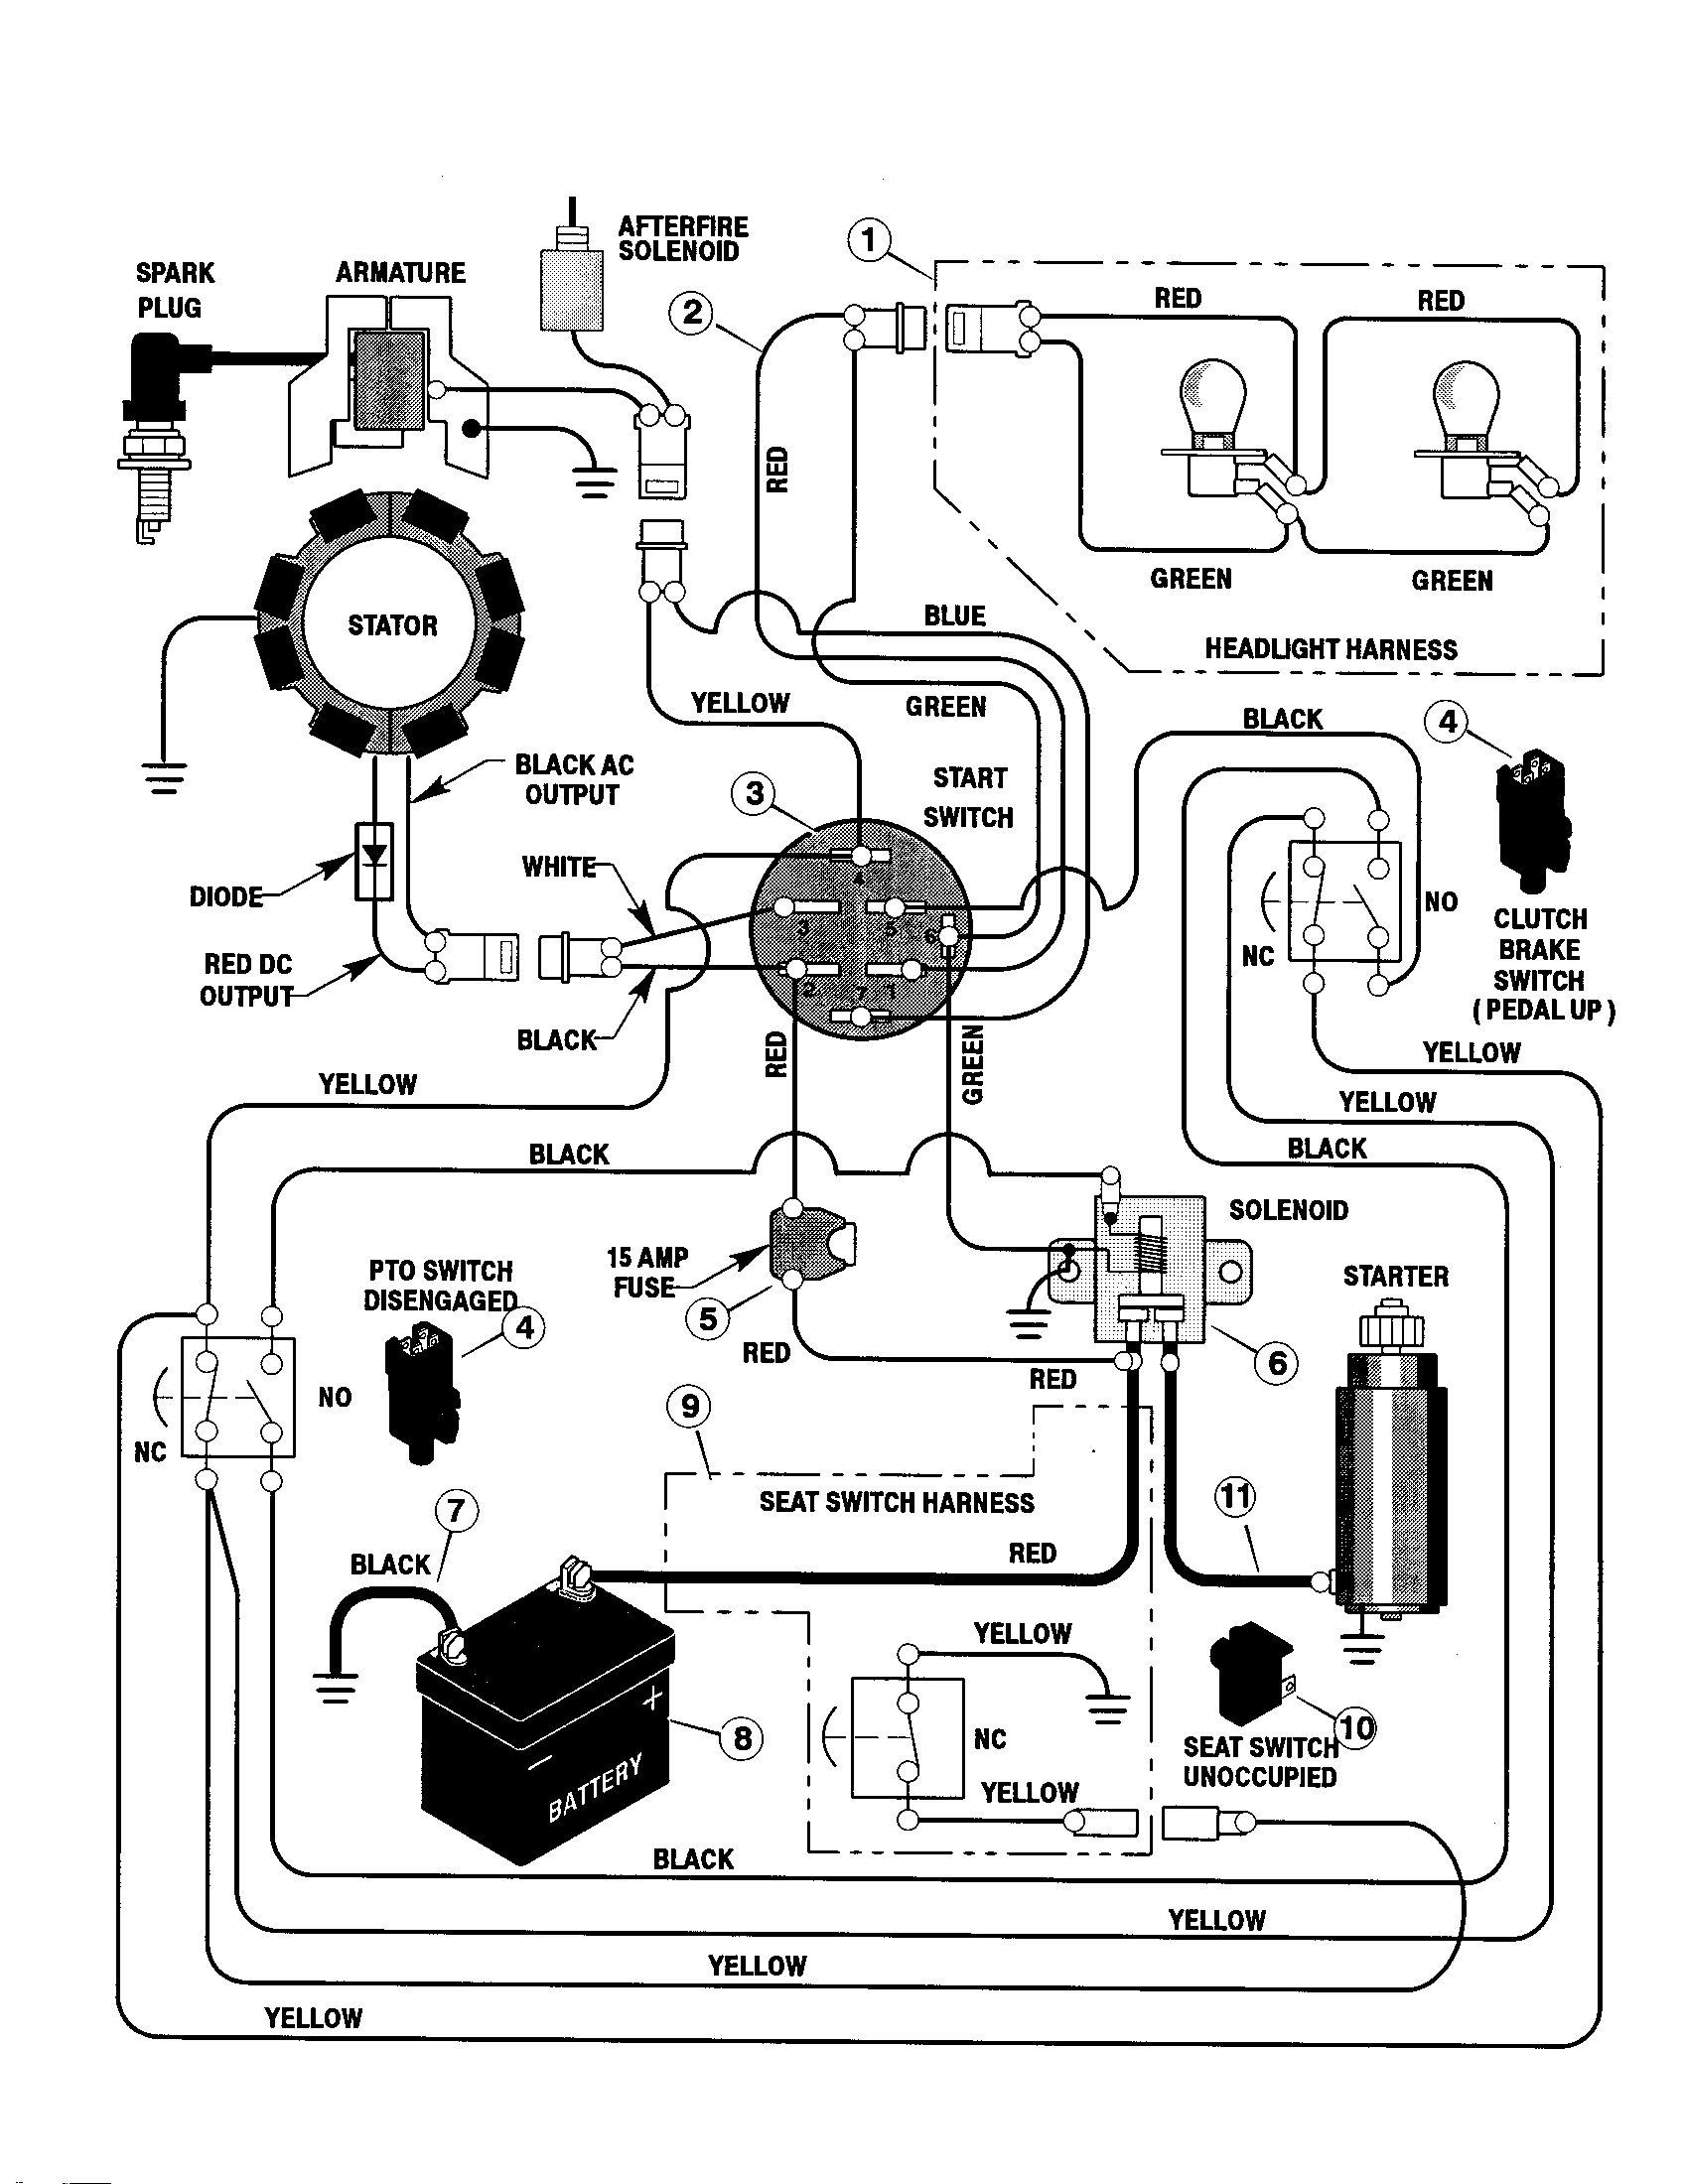 ELECTRICAL SYSTEM Diagram & Parts List for Model 42583X9A